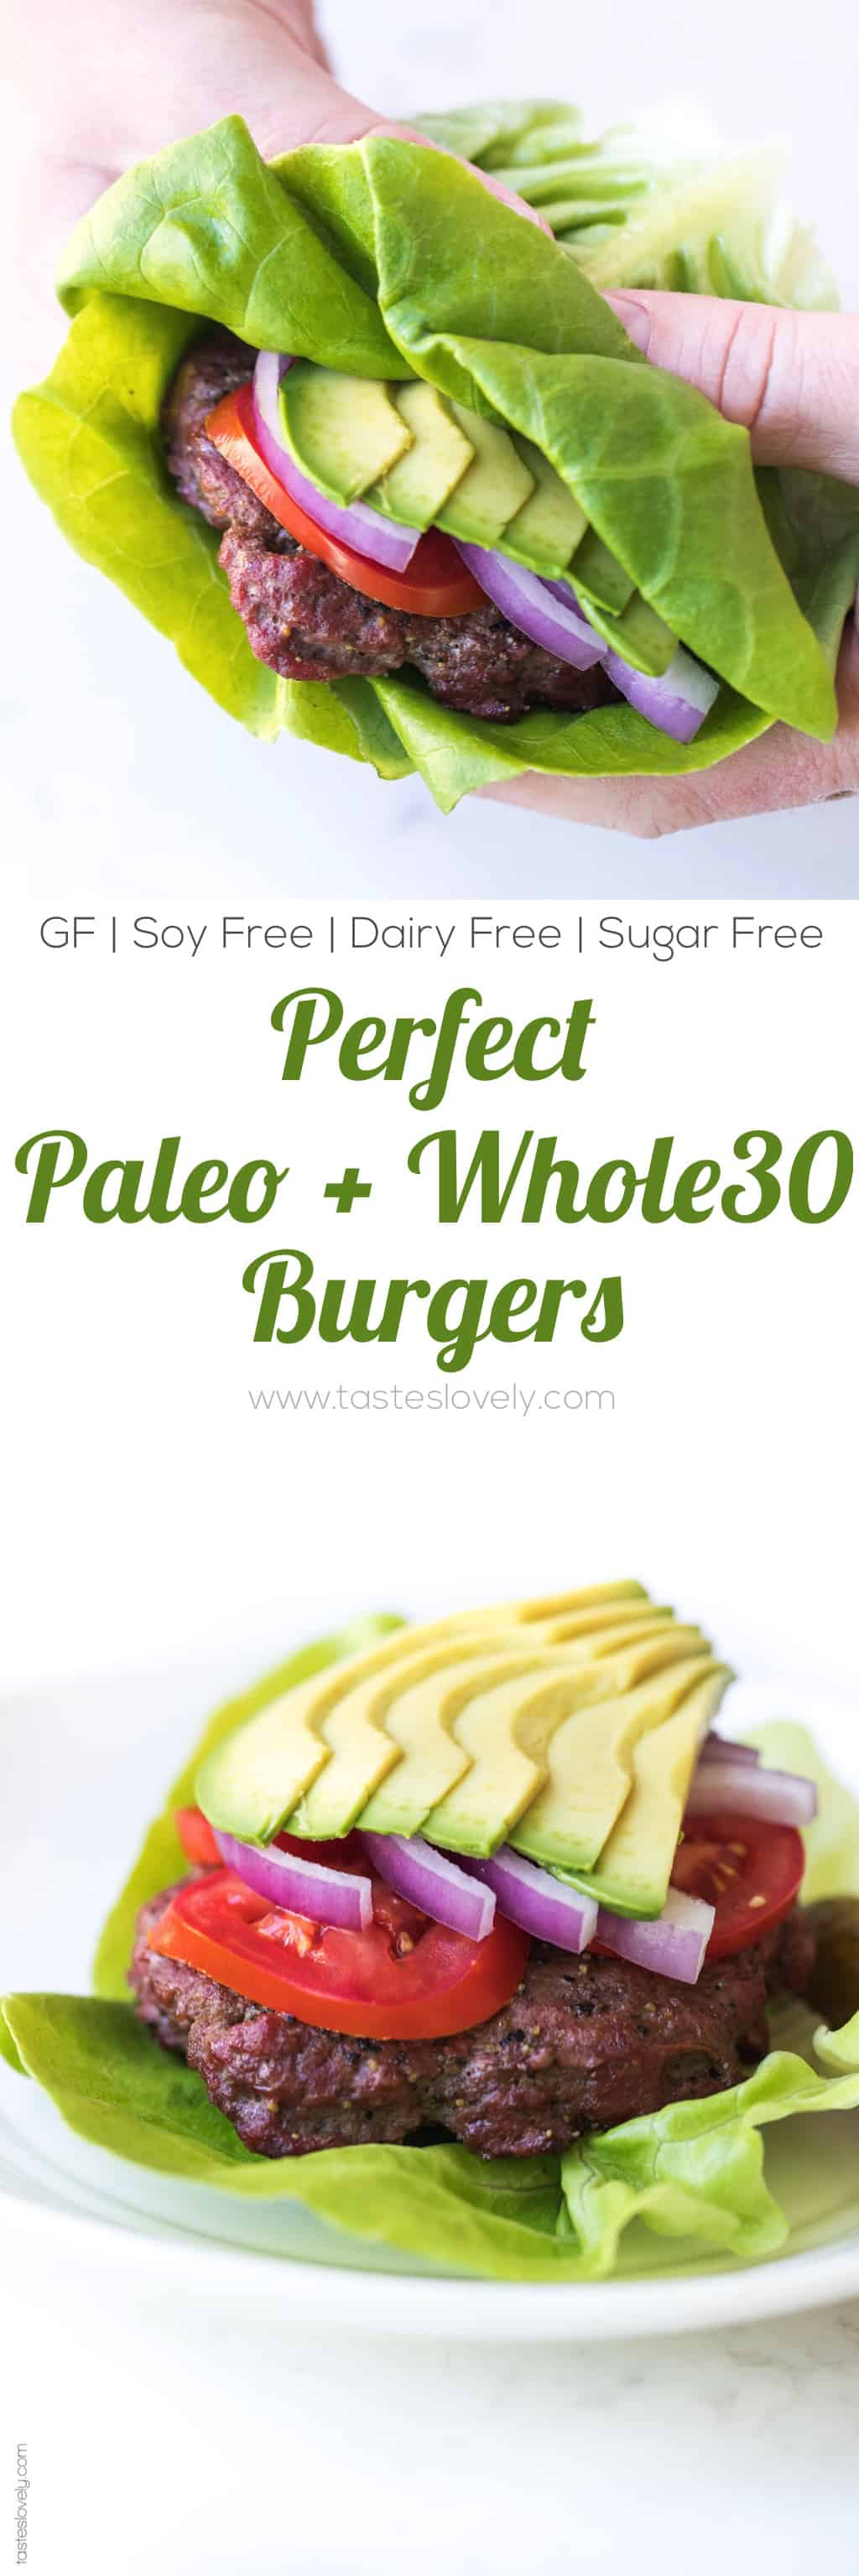 Perfect Paleo + Whole30 Burger Recipe with a Homemade Worcestershire Sauce - the secret to the most flavorful and juicy paleo + whole30 hamburgers! #paleo #whole30 #glutenfree #grainfree #dairyfree #soyfree #sugarfree #lowcarb #keto #realfood #cleaneating